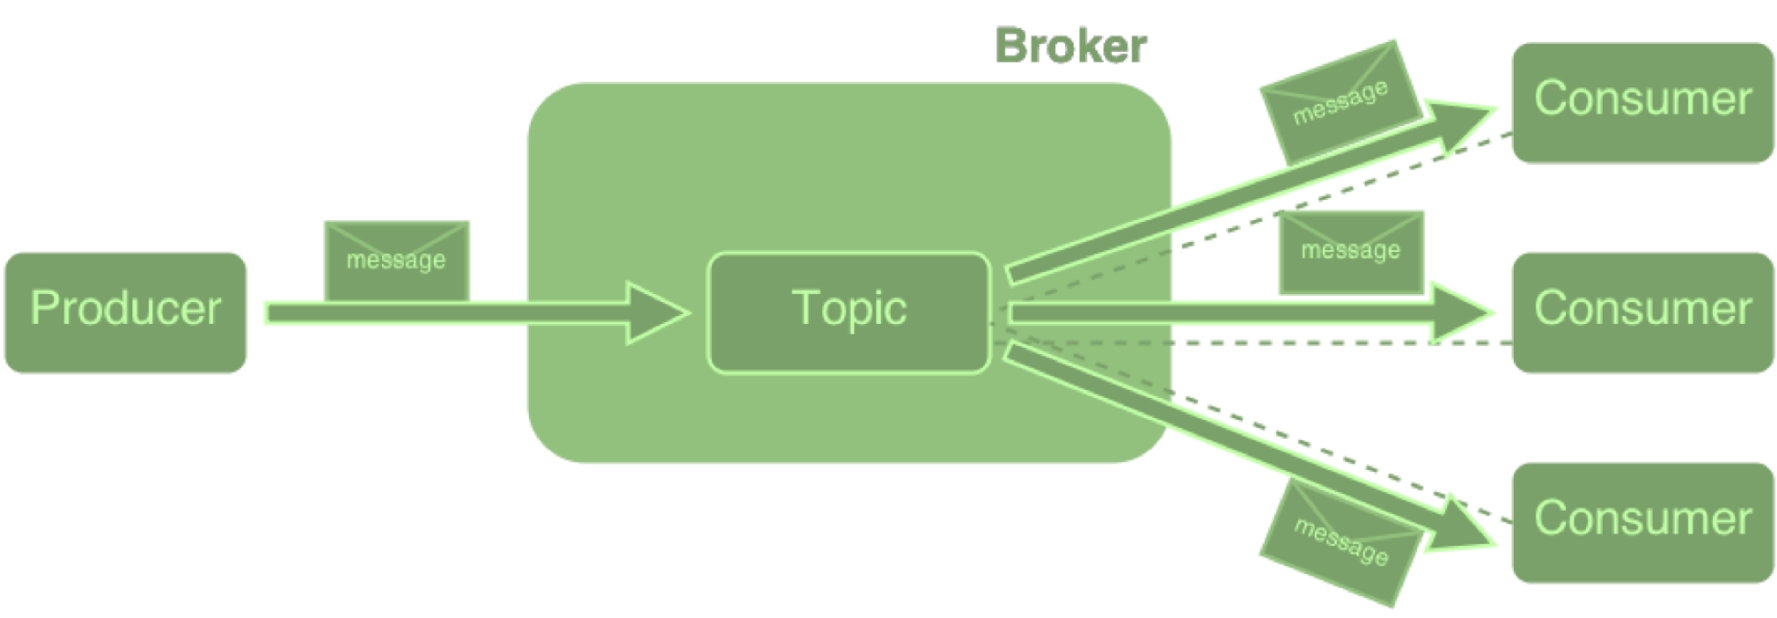 Get to Know MQTT: The Messaging Protocol for the Internet of